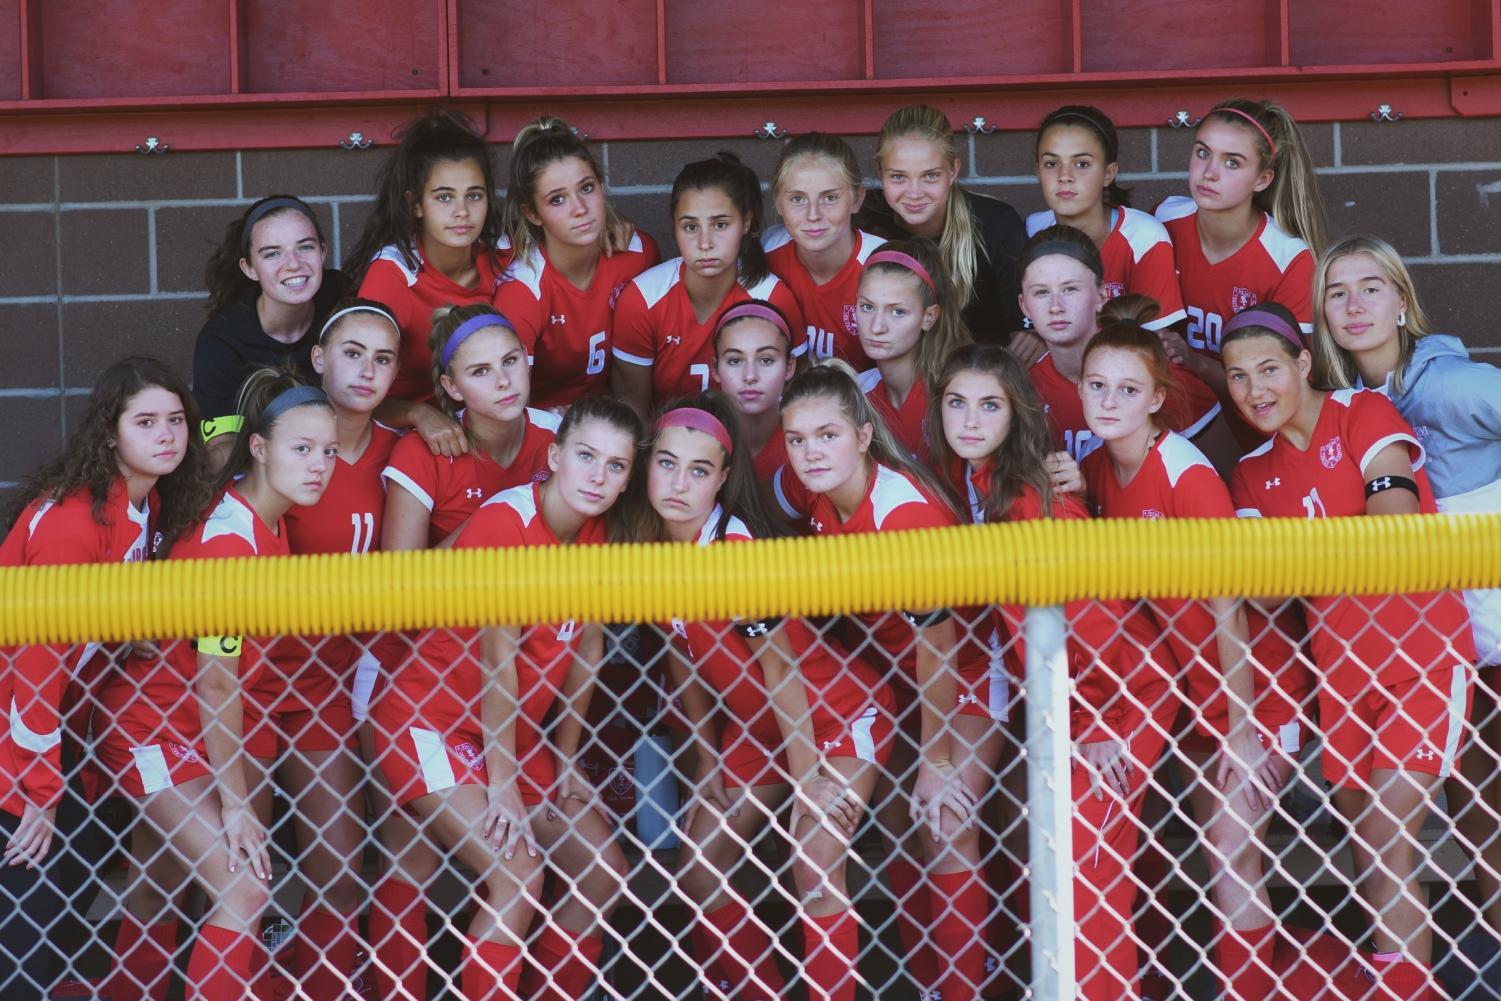 Girls soccer team stand together, ready for their game.